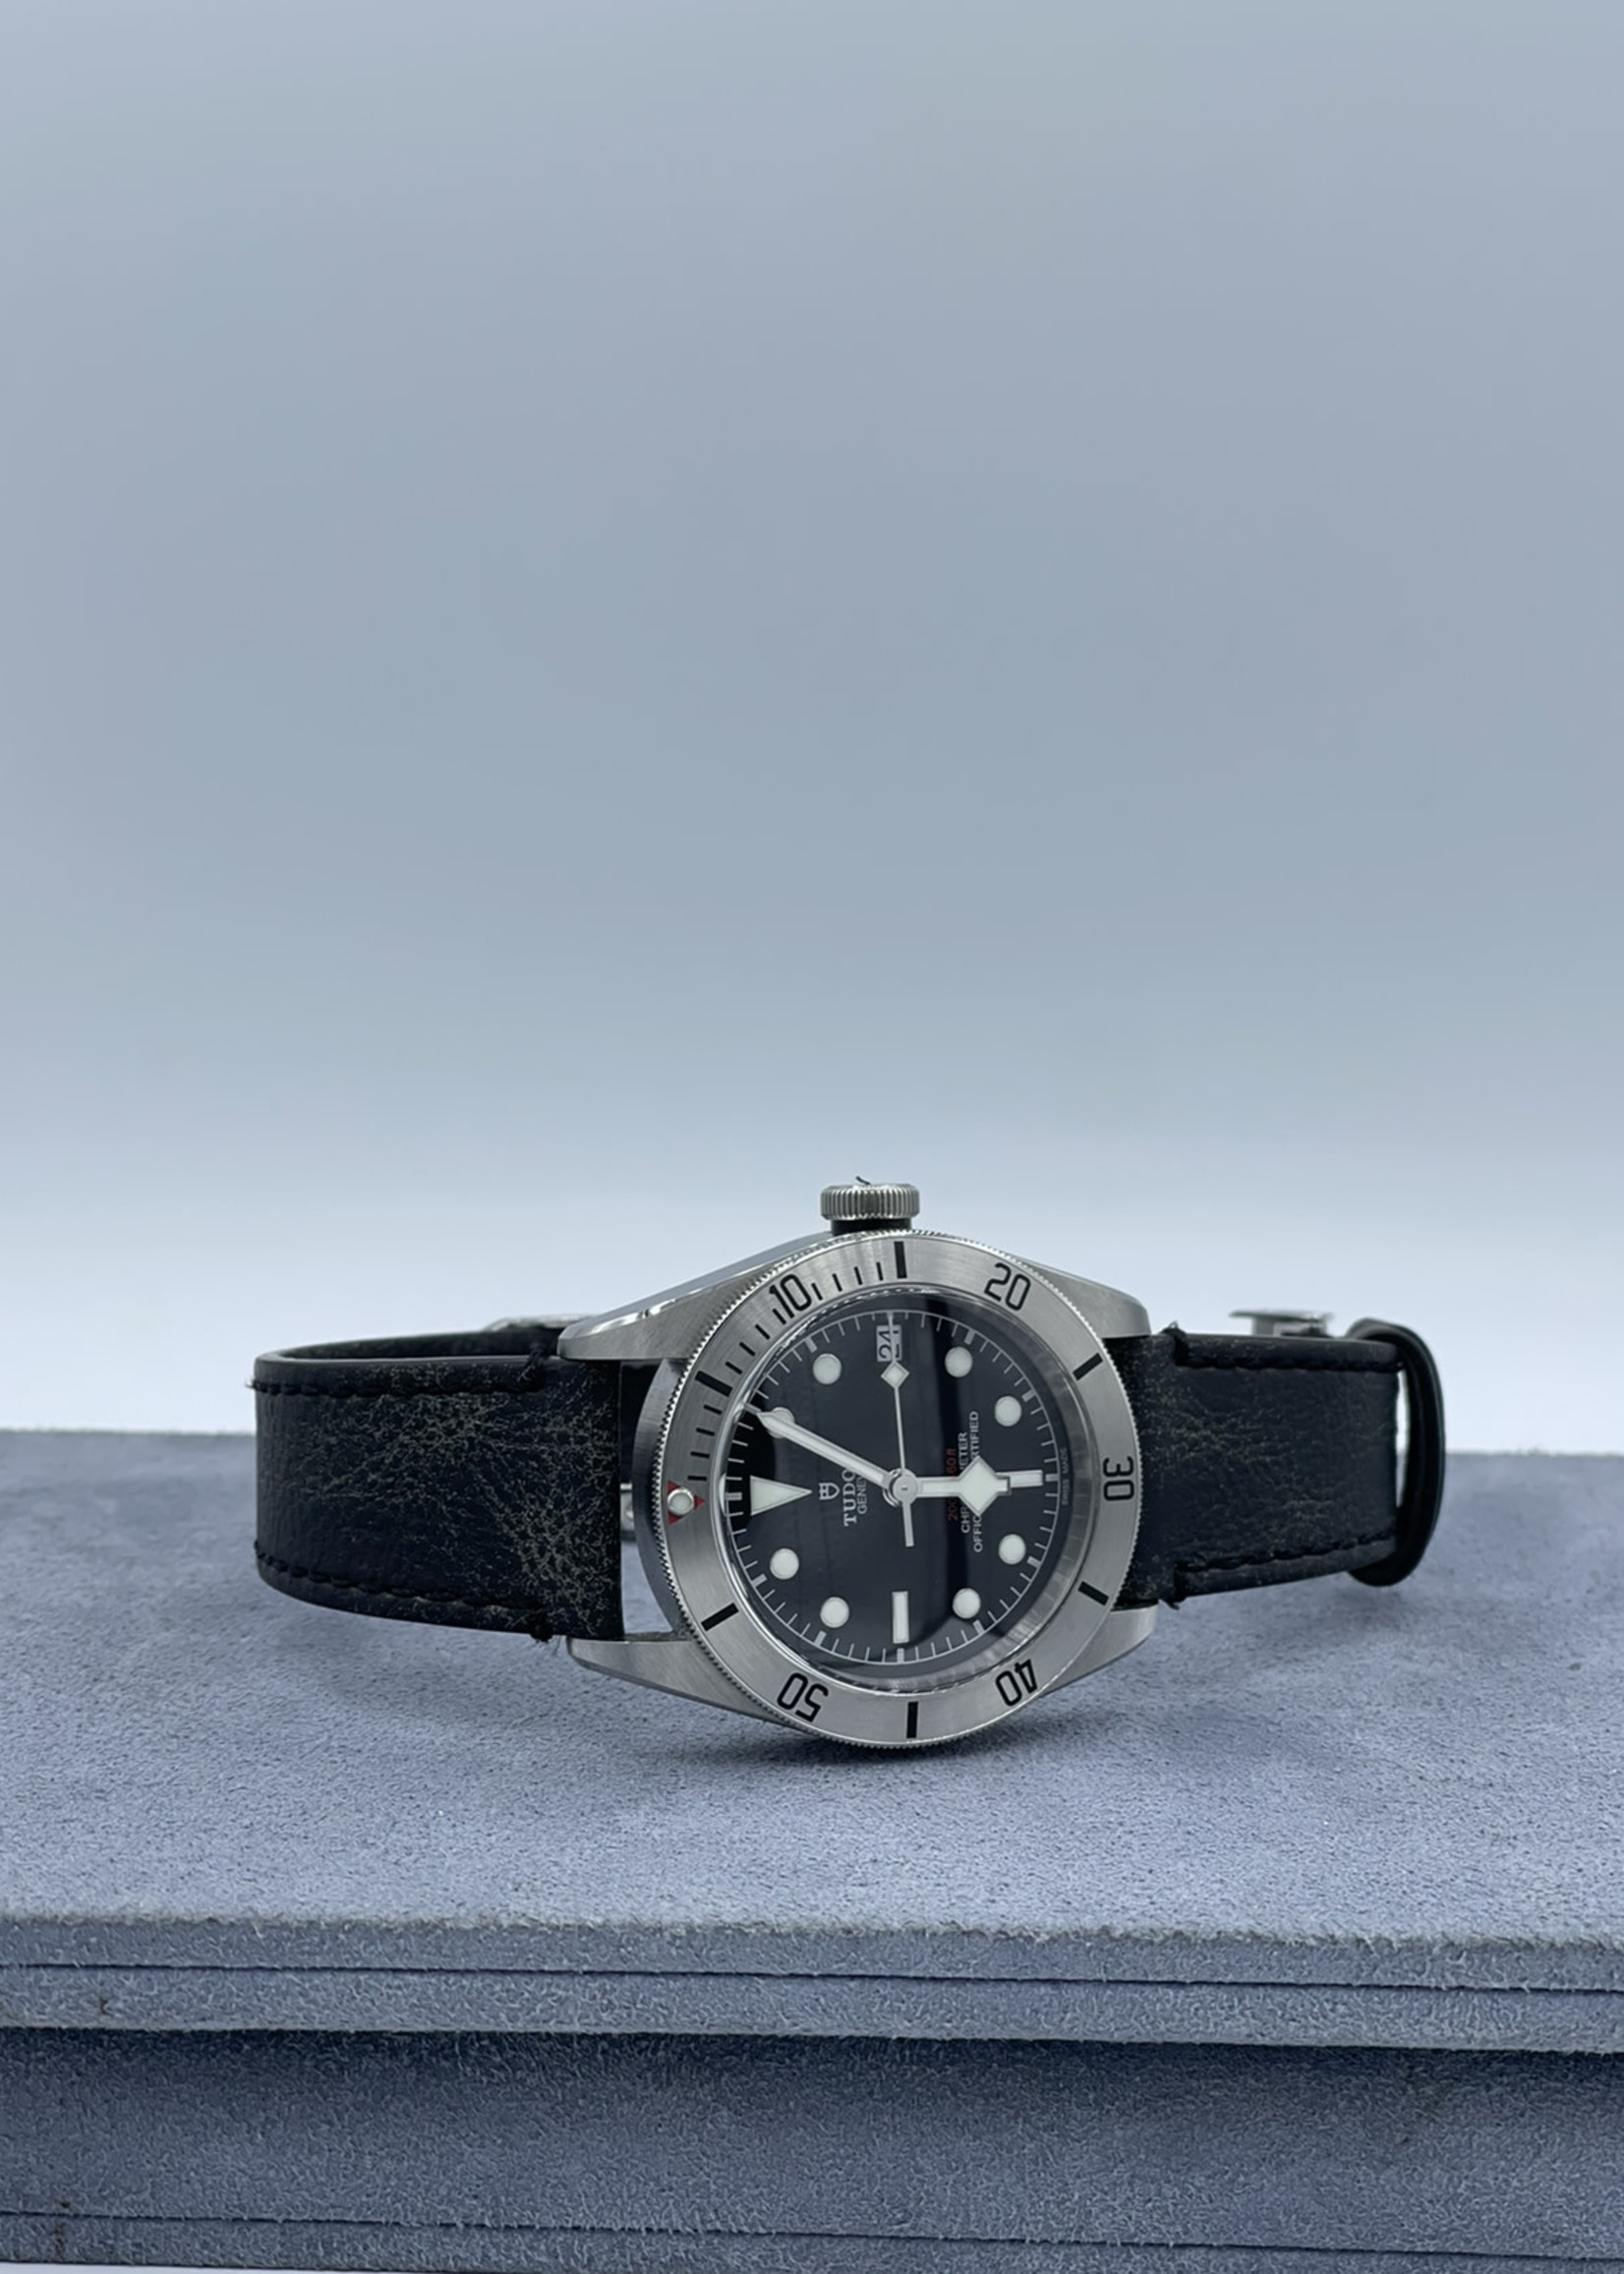 Tudor Tudor Watch Stainless Steel with Black Leather Band